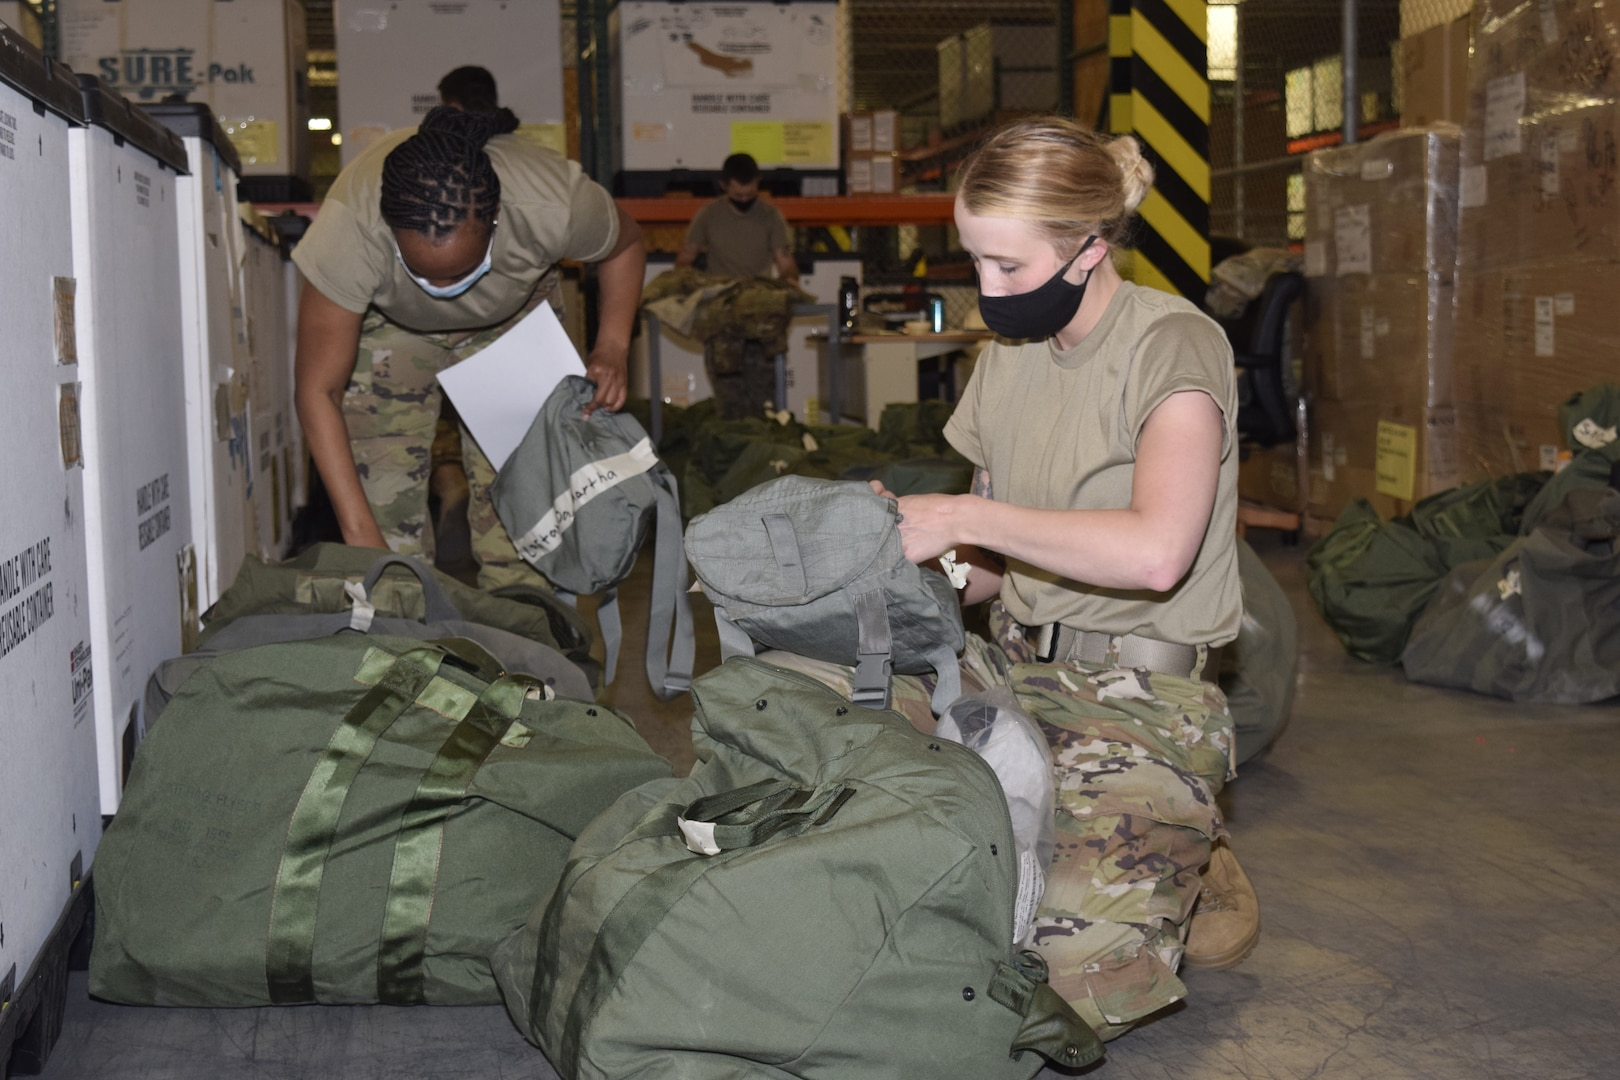 Tech Sgt. Alicia Garvin, 433rd Force Support Squadron customer support NCO in charge, Staff Sgt. Alexandra Thompson, 433rd FSS customer support assistant, and Staff Sgt. Taylor Mogford, 433rd Logistics Readiness Squadron individual protective equipment supervisor (background), prepare and issue equipment for an upcoming exercise at Joint Base San Antonio-Lackland, Texas, April 7, 2021. The 433rd LRS contains 120 Airmen in eight Air Force career fields, who specialize in deployment planning, supply chain operations, fuels and transportation management. (U.S. Air Force photo by Senior Airman Brittany Wich)